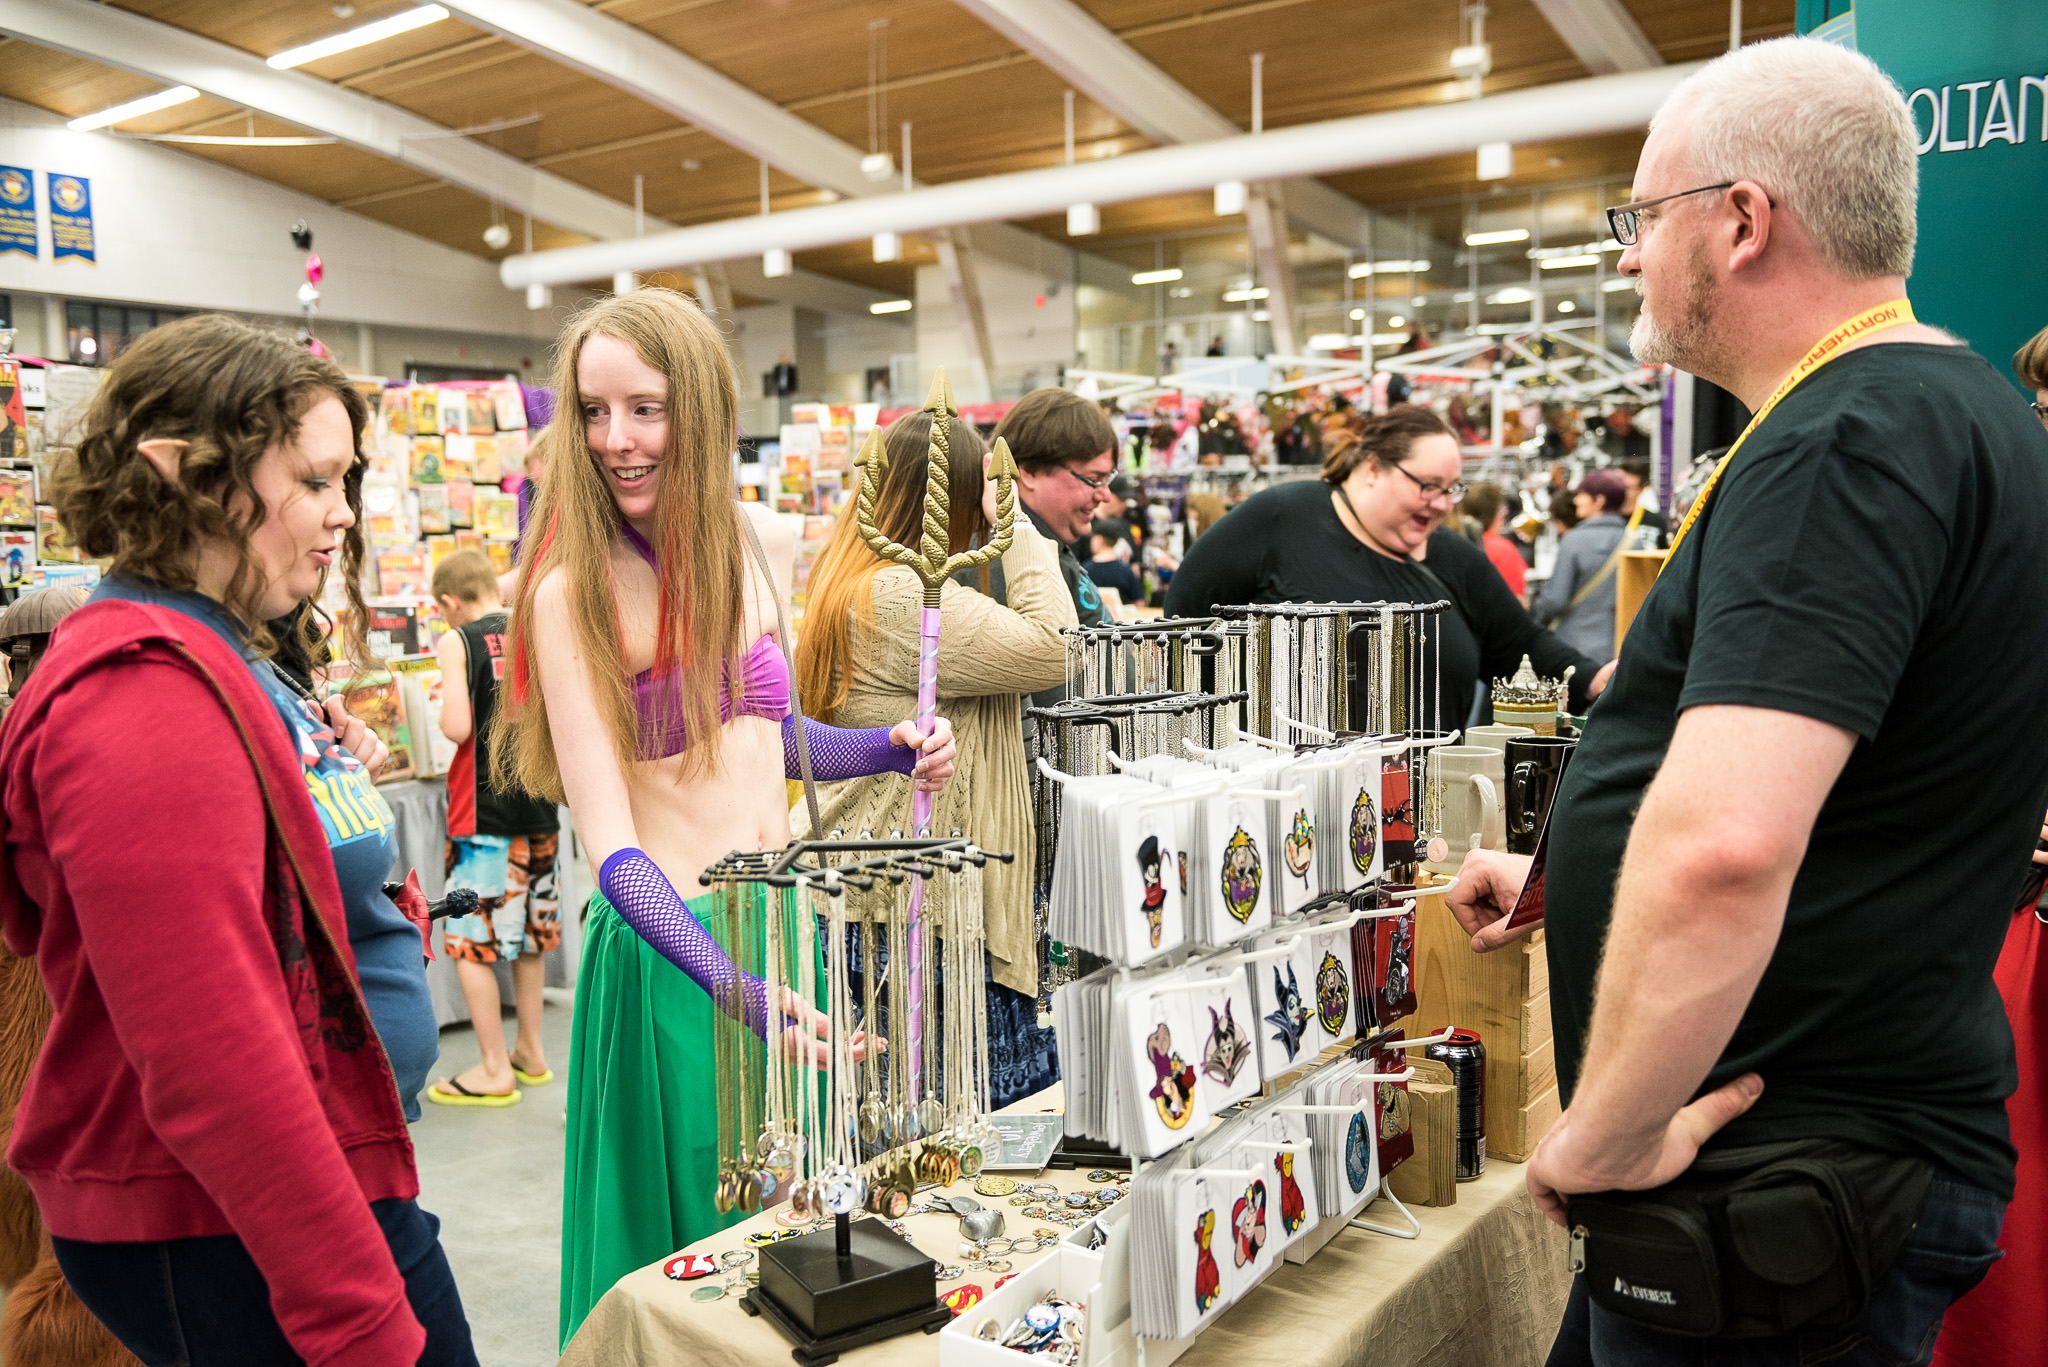 Attendees shop the exciting pop culture items at the Zoltangal booth  photo credit Christos Sagiorgis/Cvlt Stvdio